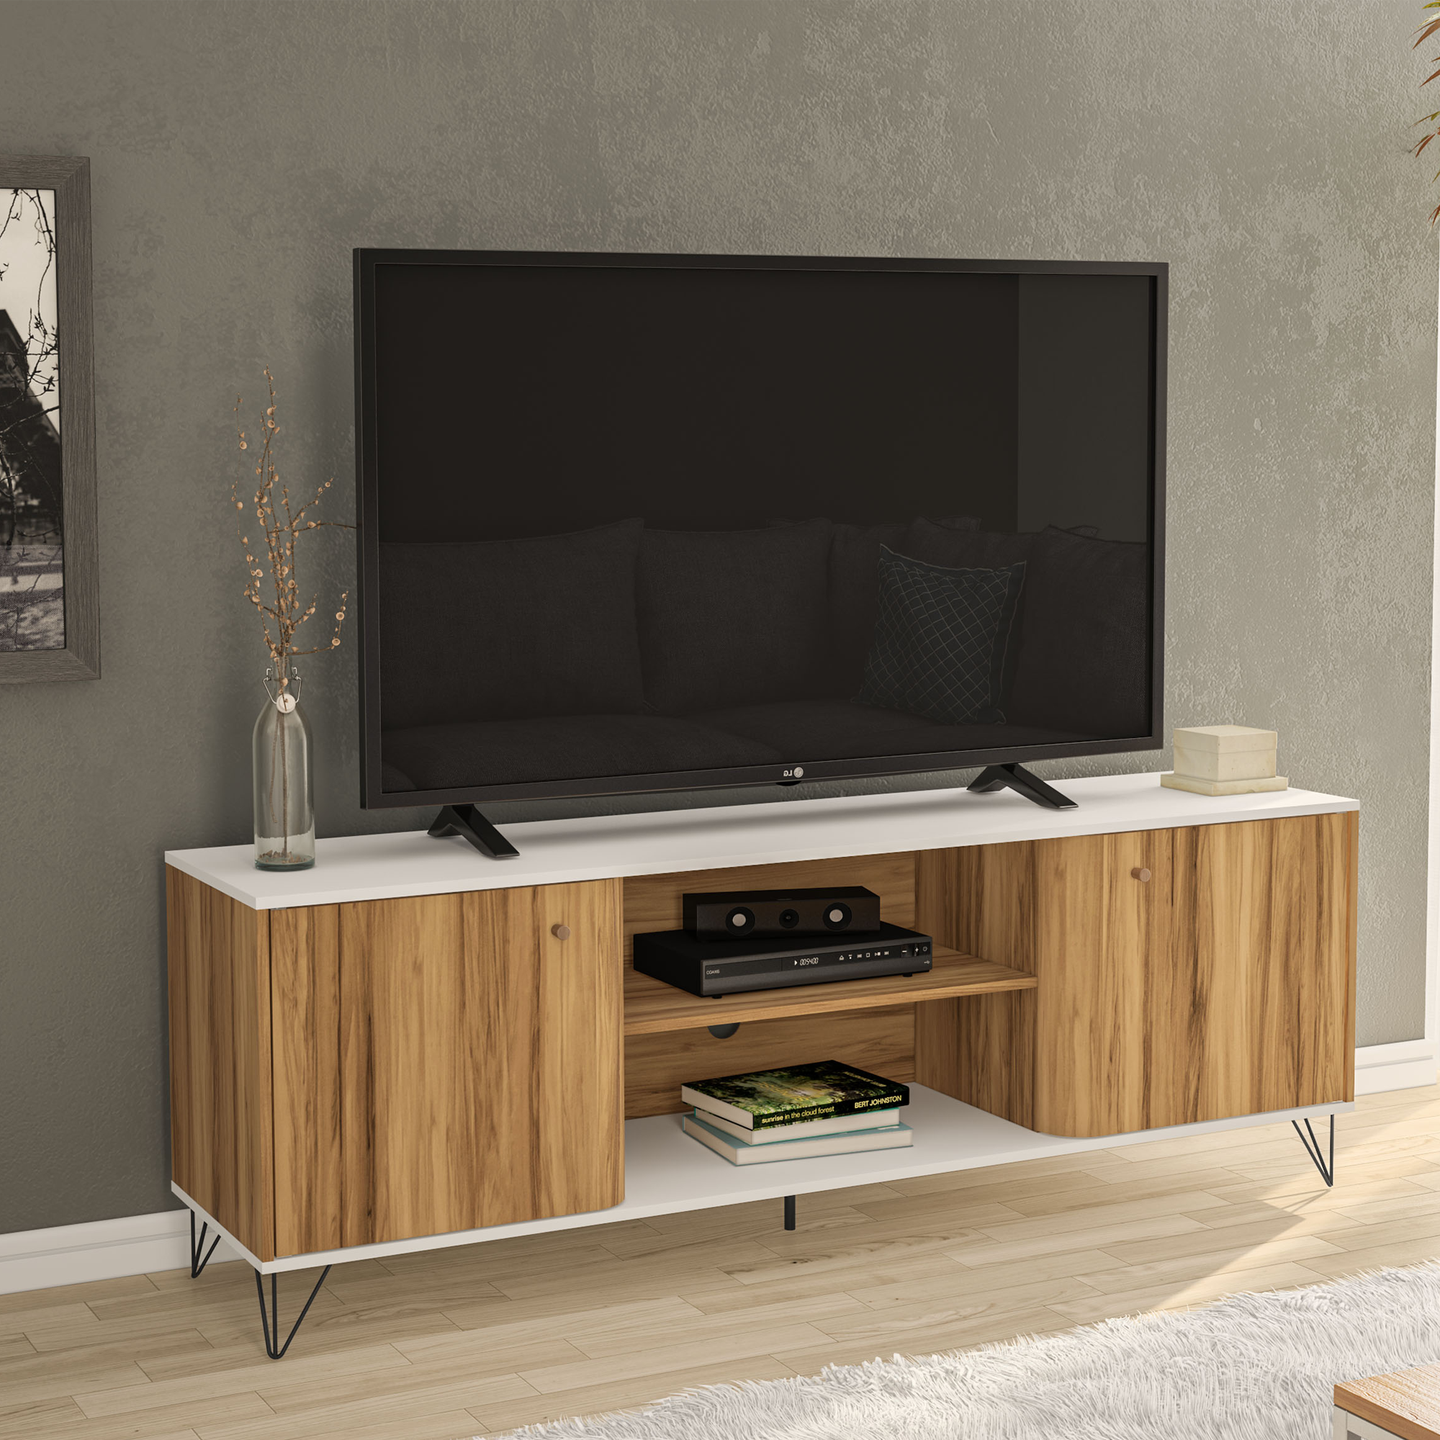 Boahaus Louisville TV Stand, TVs up to 70 inches, 02 cabinets, 02 open shelves